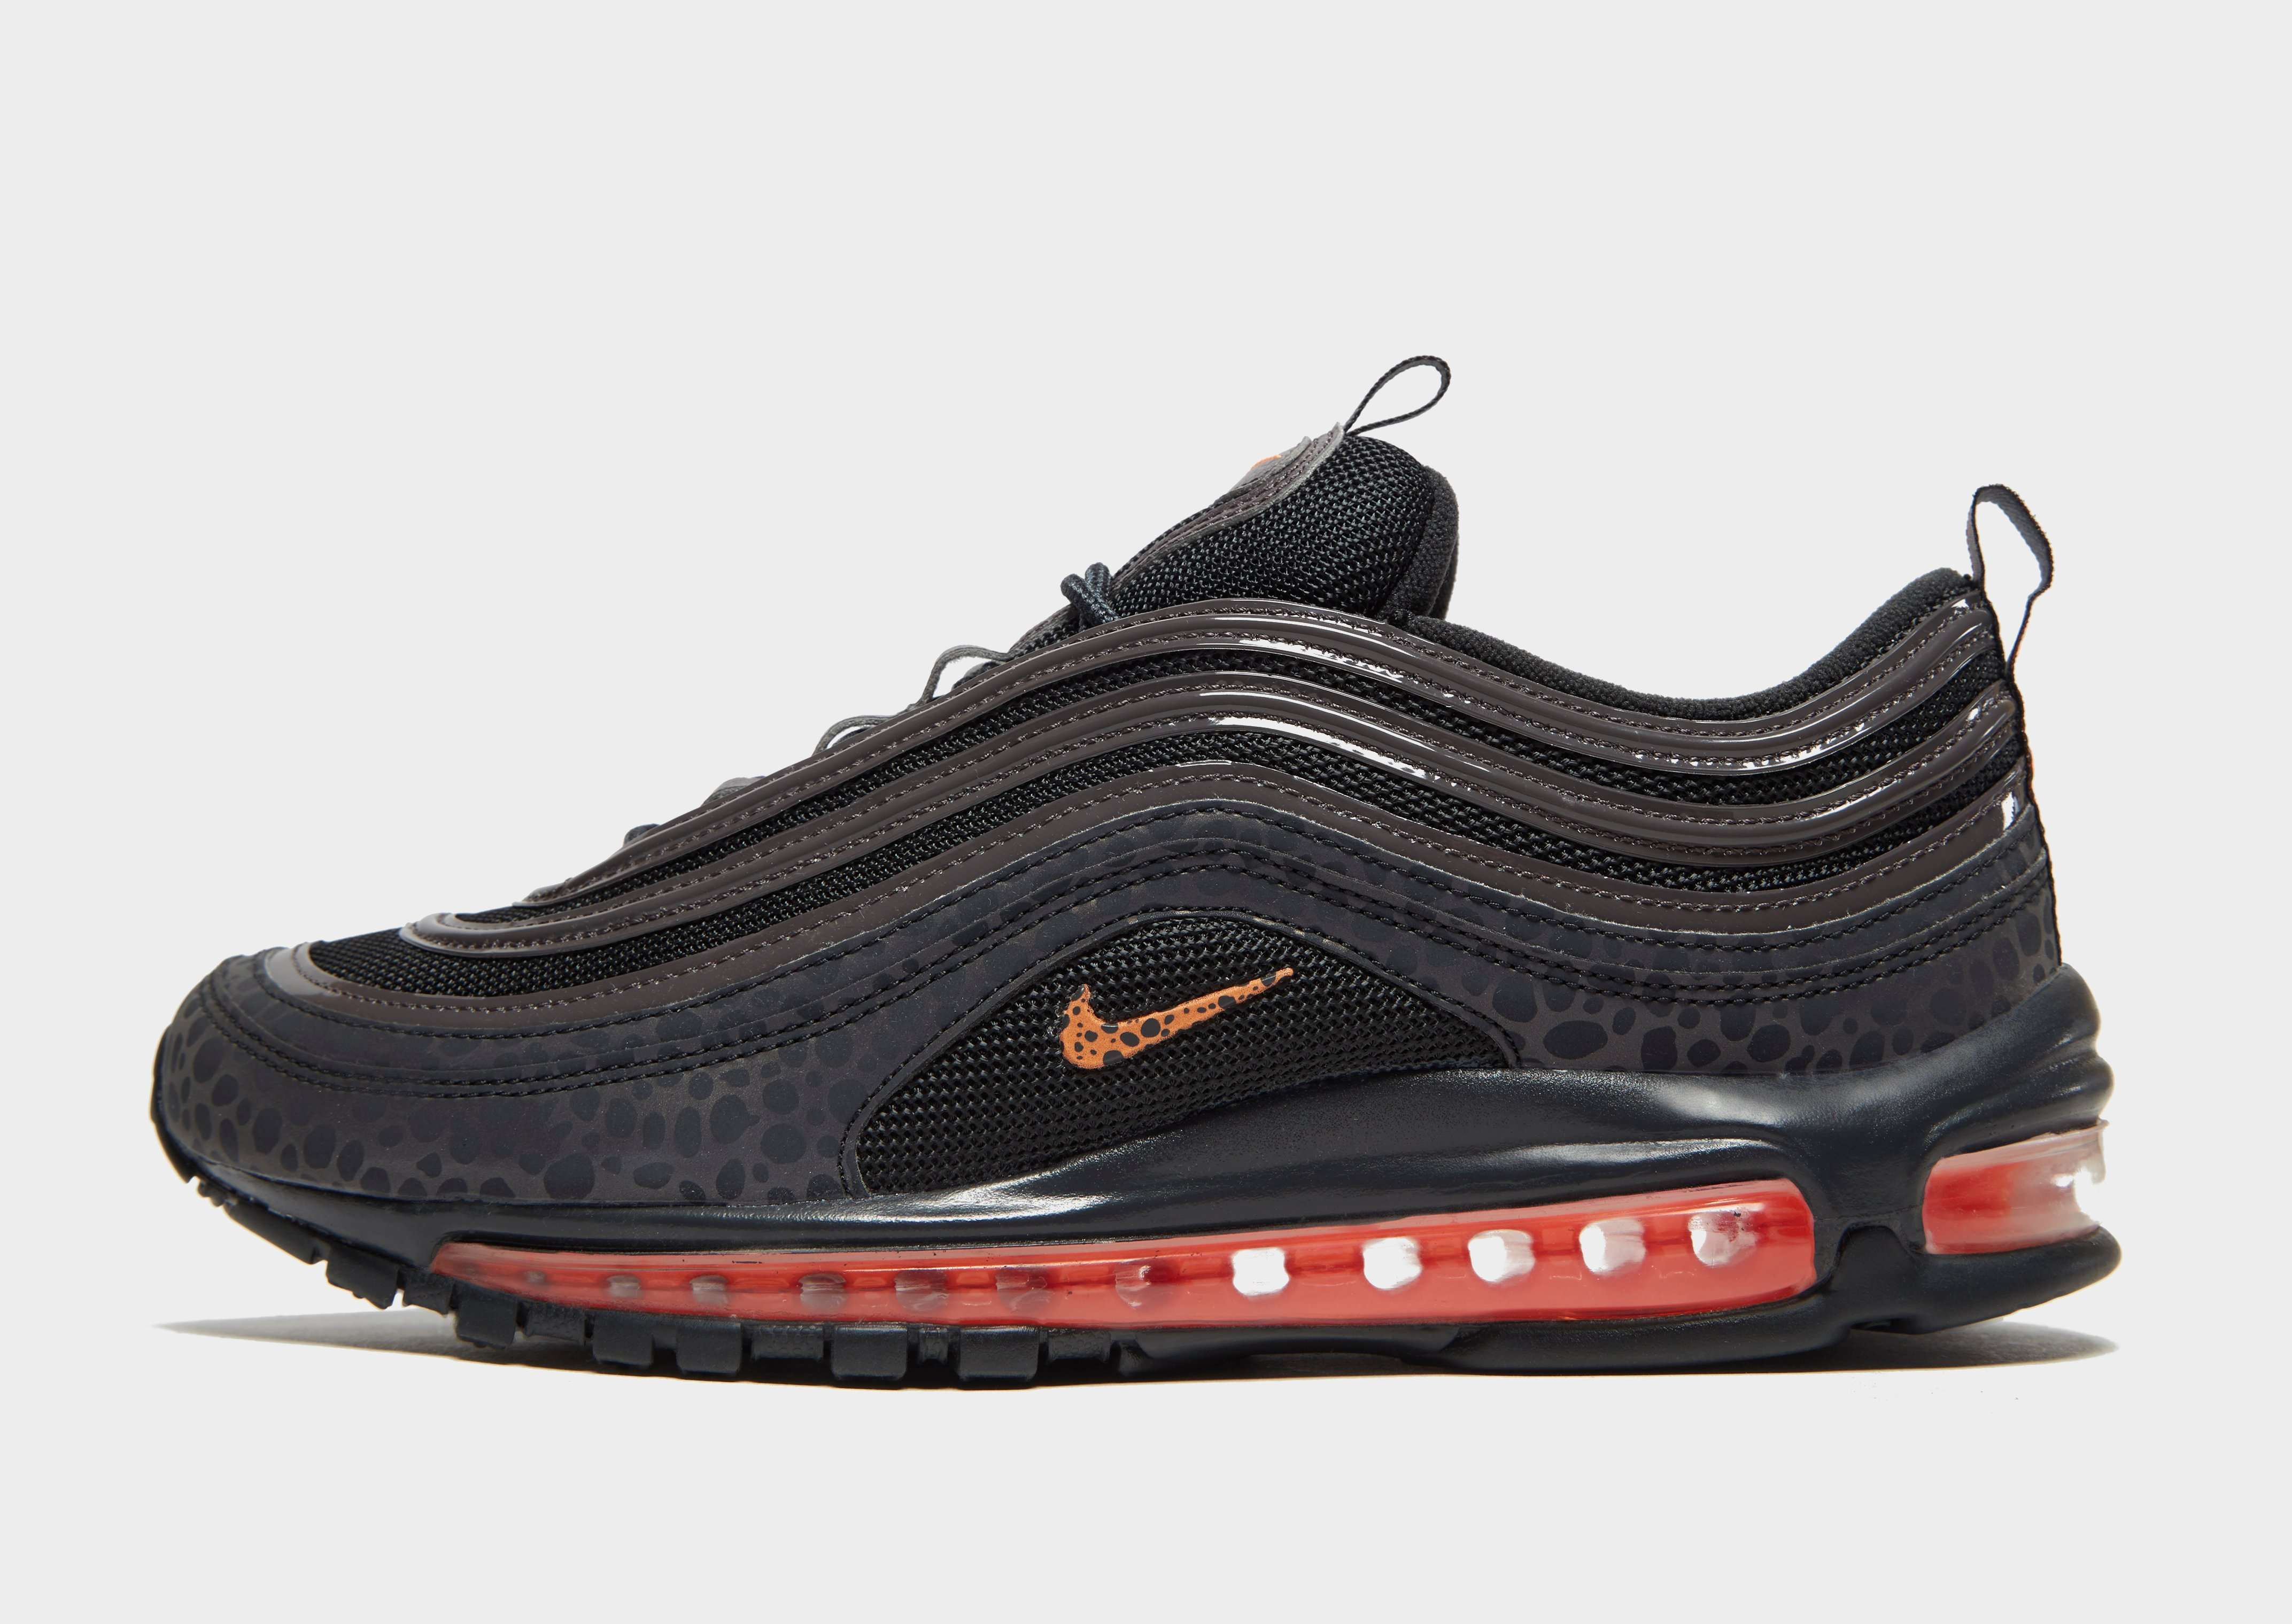 gi y th thao air max 97 h ng t n hot hit max9701 Sendo